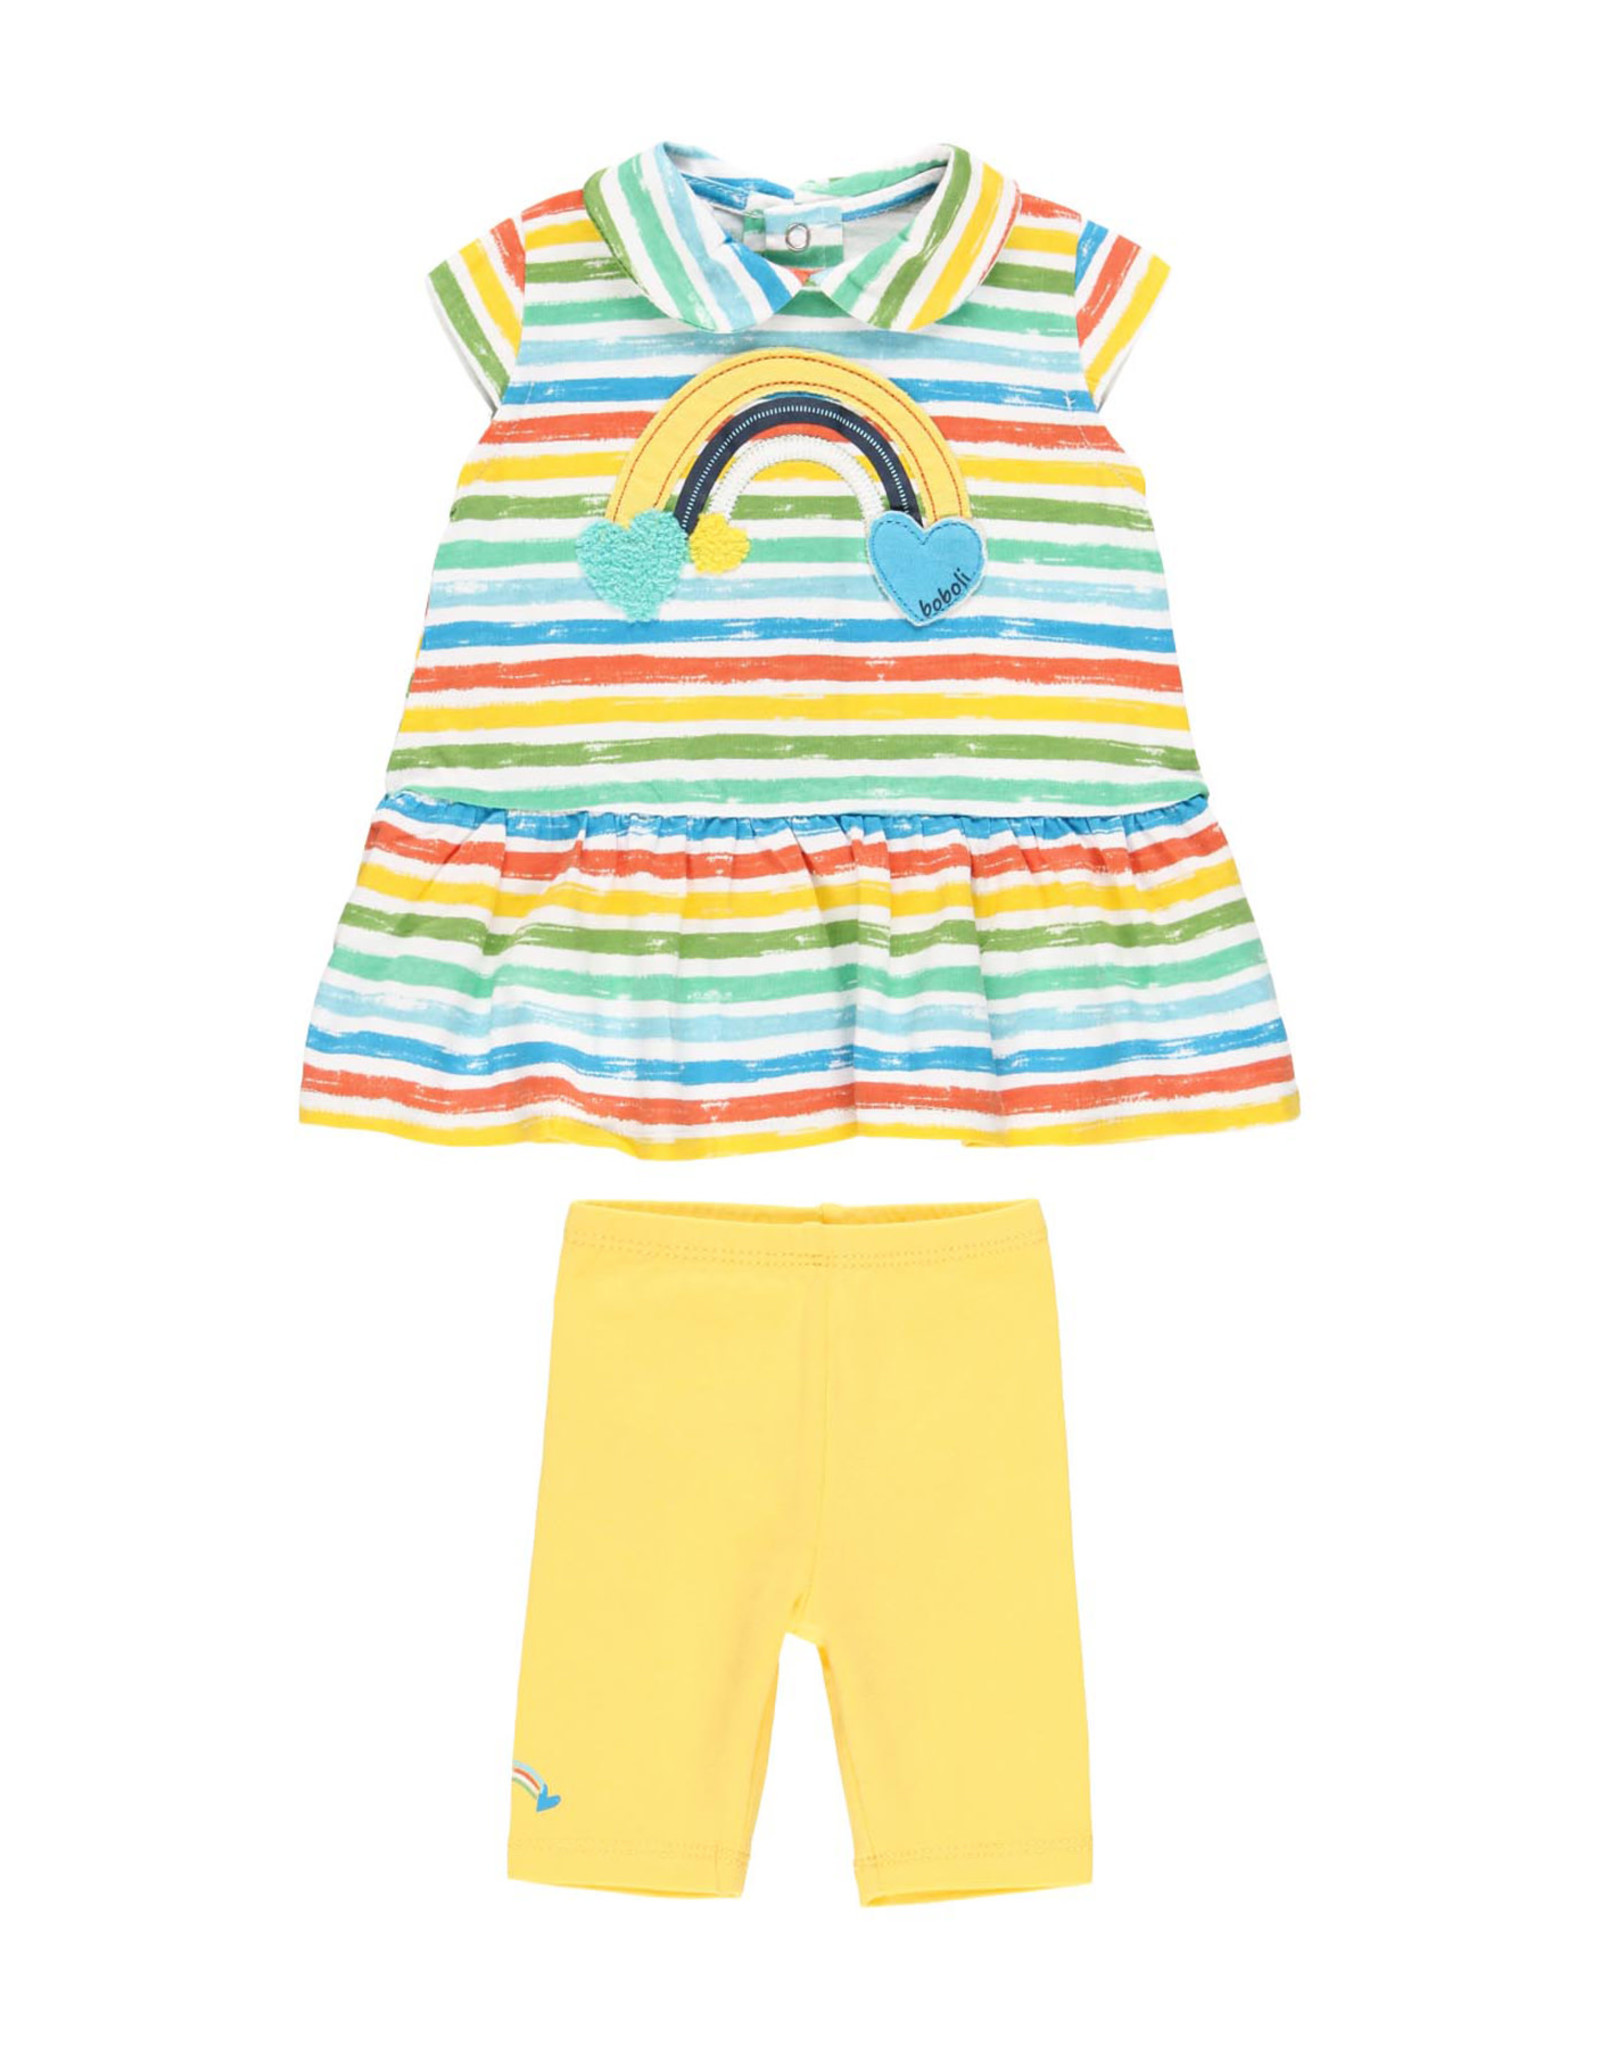 Boboli Shirt and Leggings Set, Striped, Rainbow